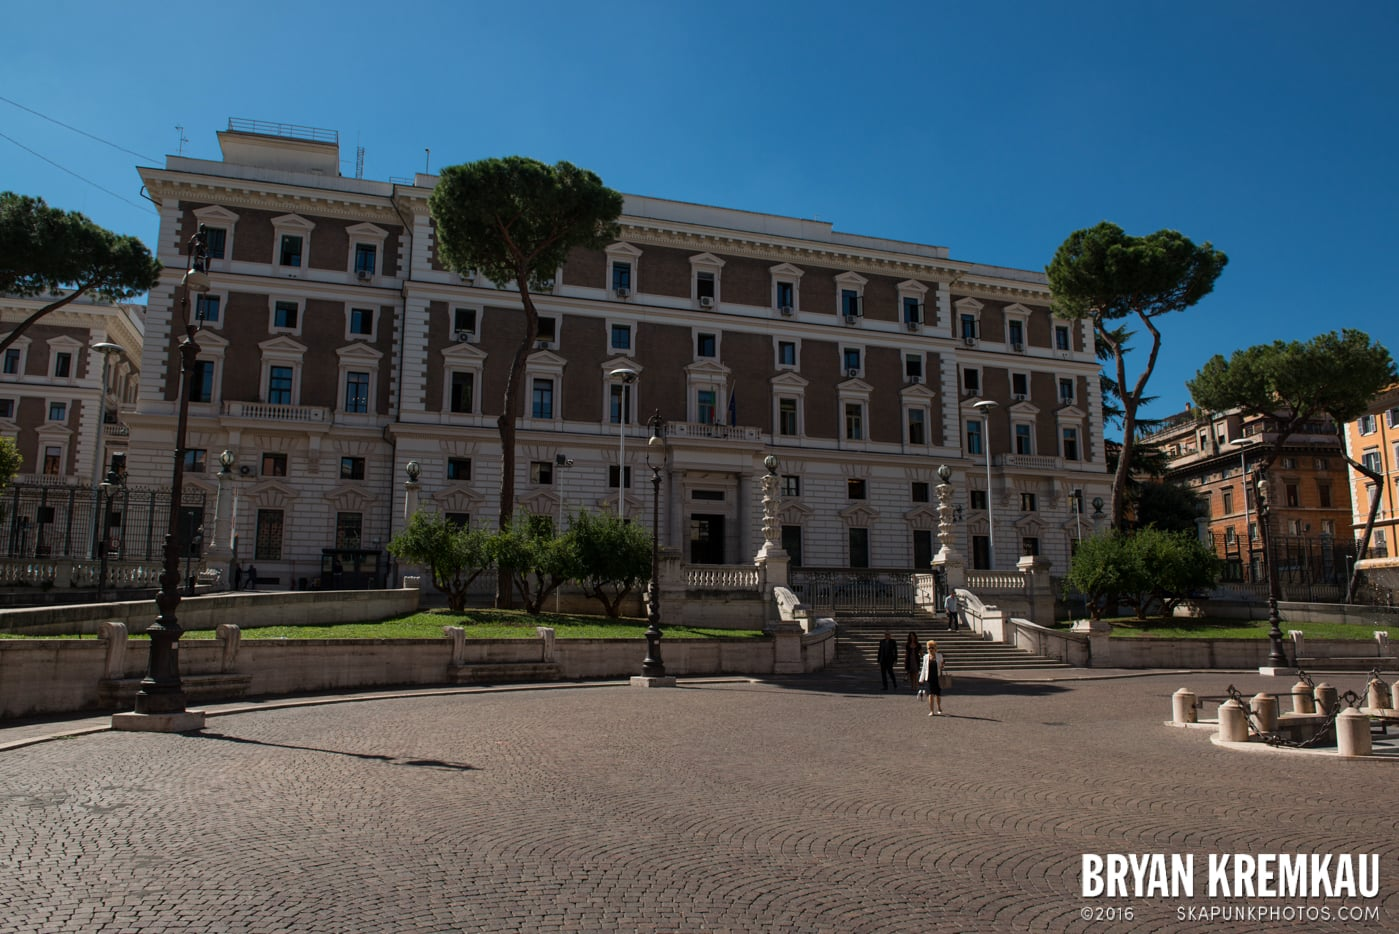 Italy Vacation - Day 12: Rome - 9.20.13 (31)